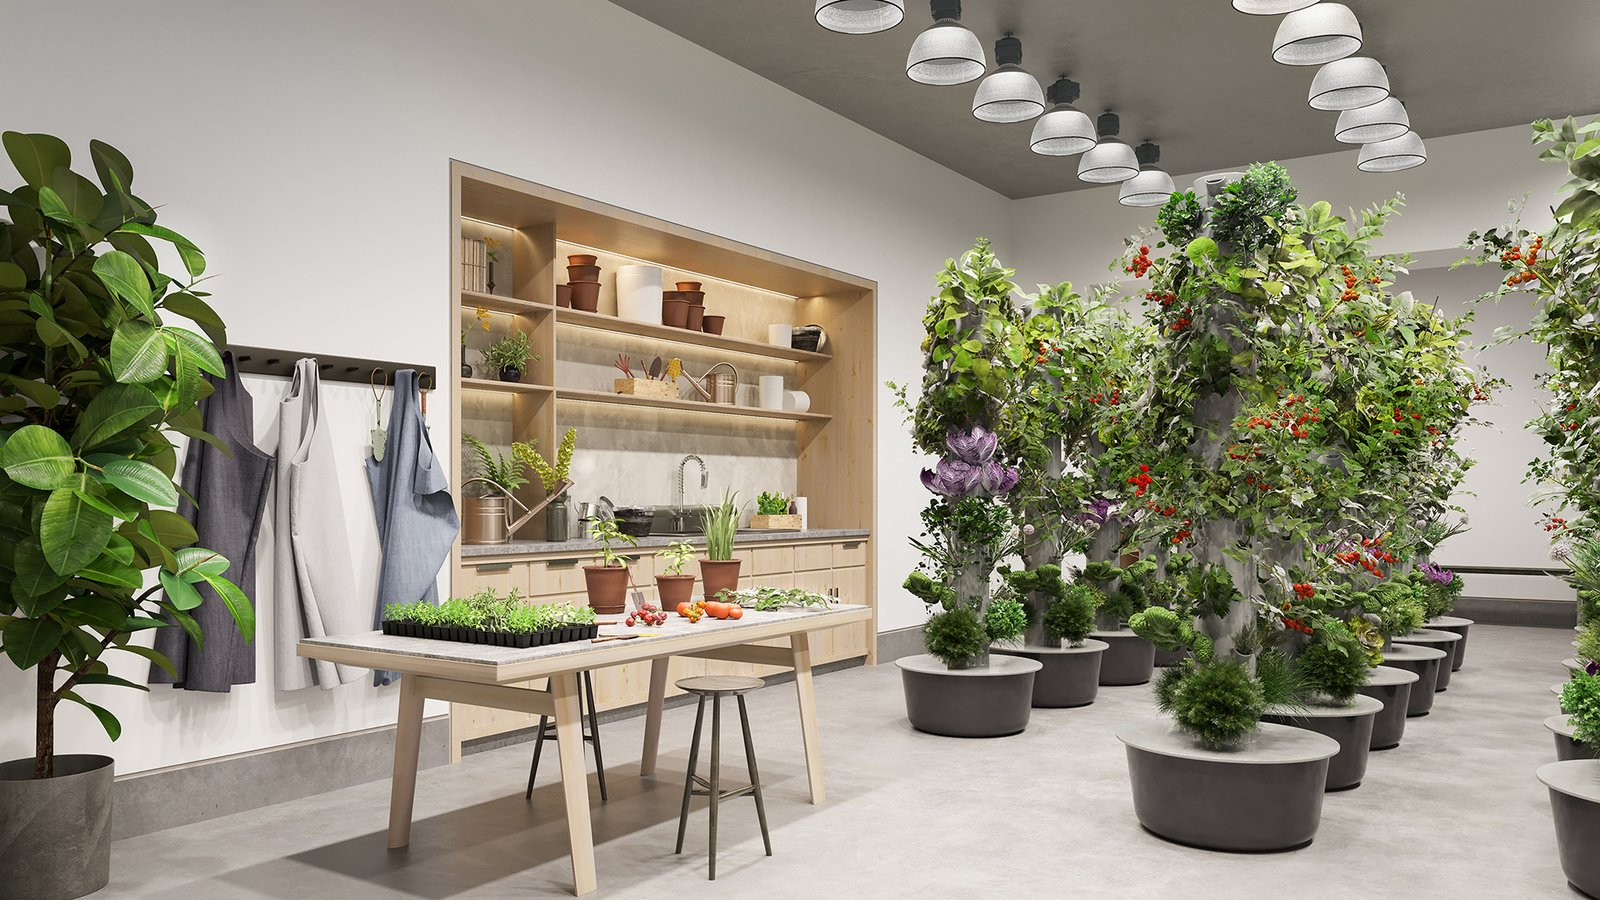 Photo 8 of 8 in 3 new york city residential projects that feature along with art and music recording studios waterline square will offer residents an indoor gardening workwithnaturefo